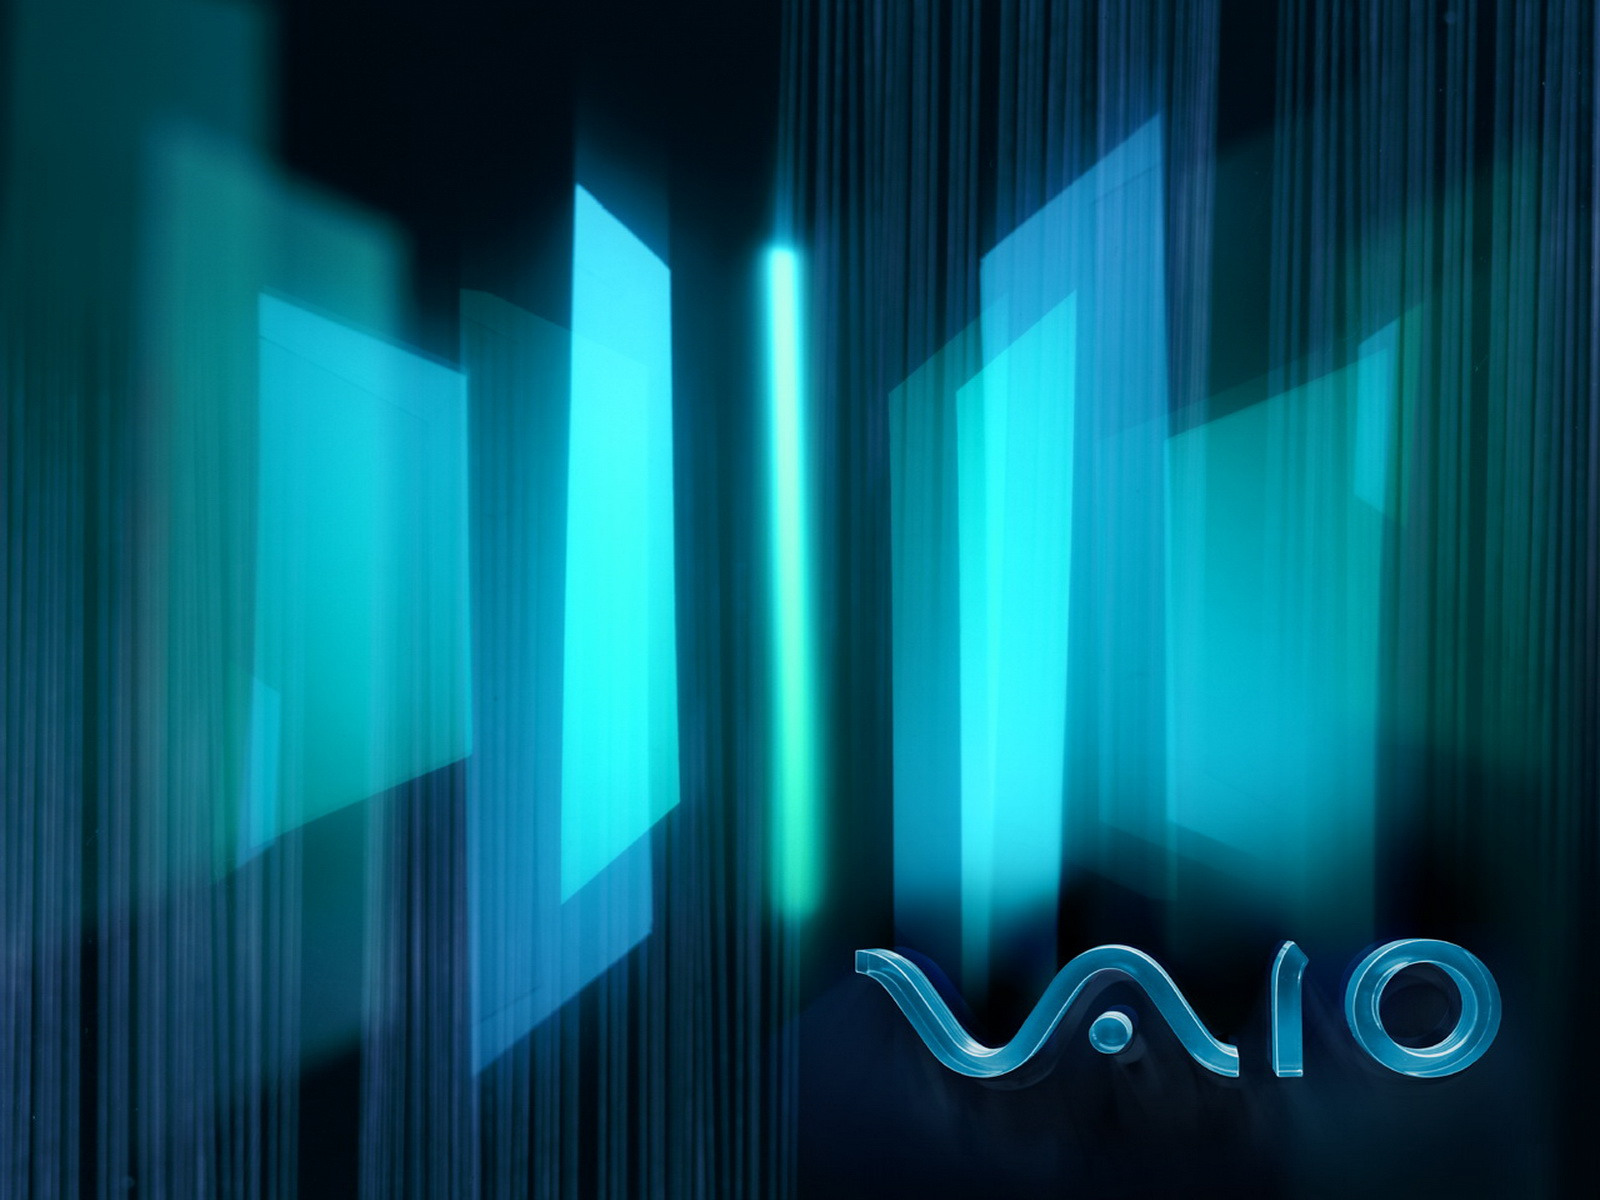 Free download HD Sony Vaio Wallpapers